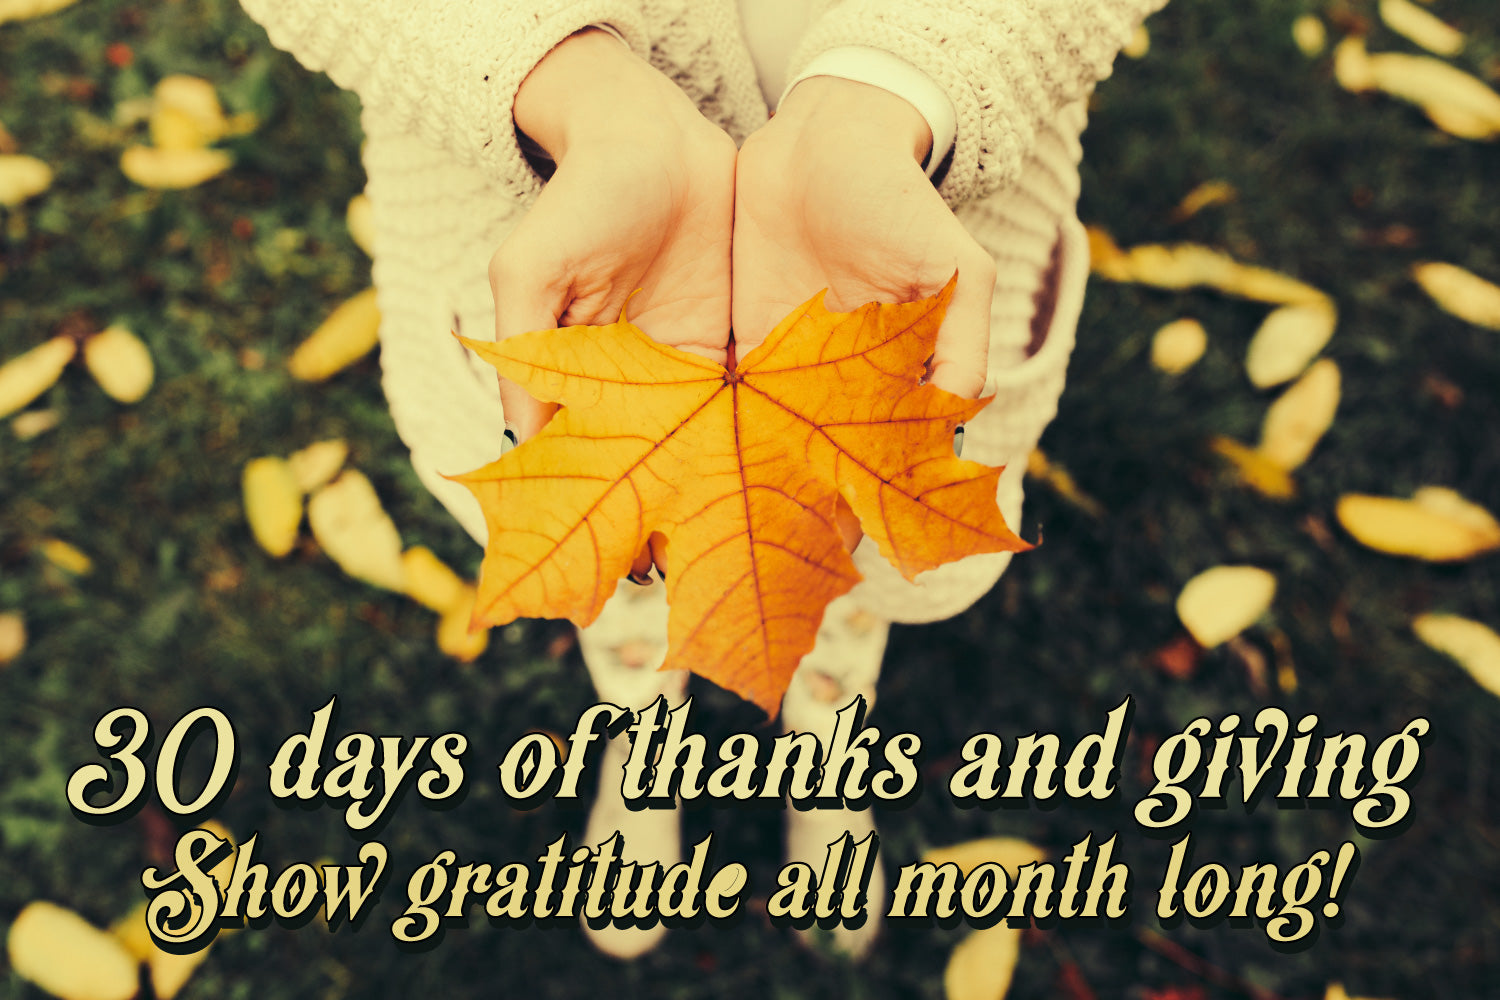 30 days of thanks and giving